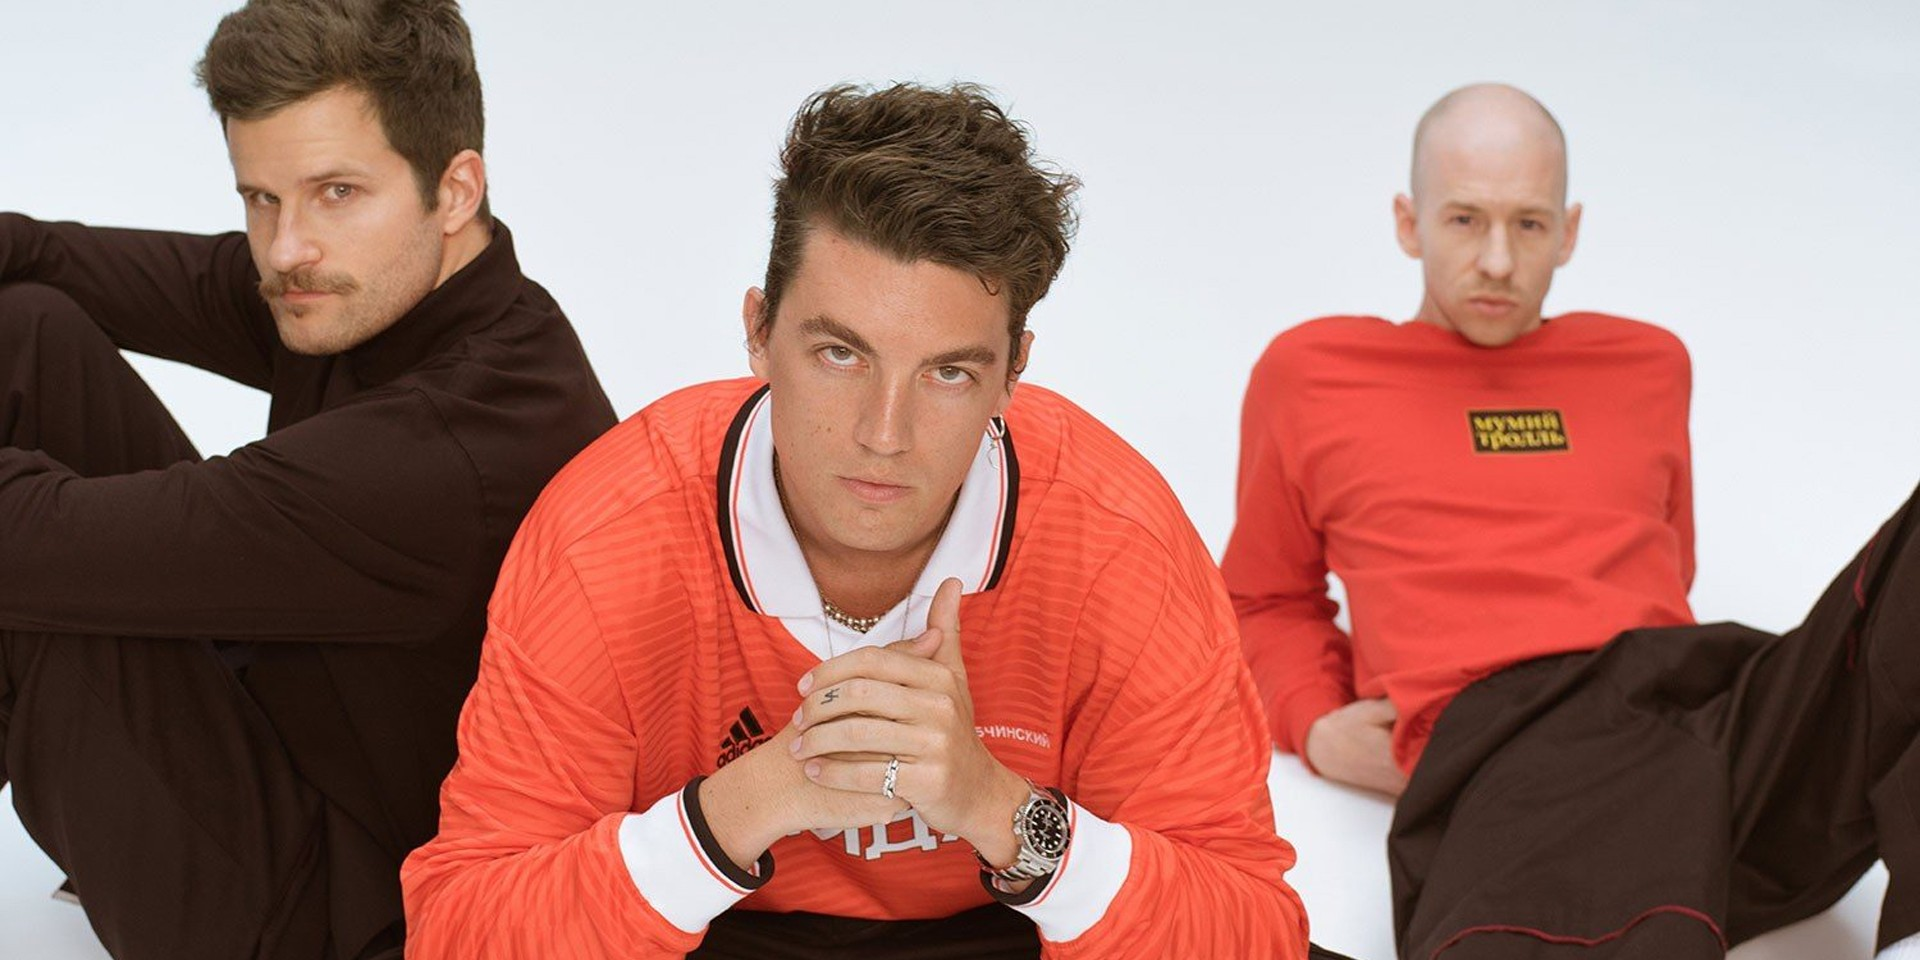 LANY albums certified Diamond and Double Diamond in the Philippines